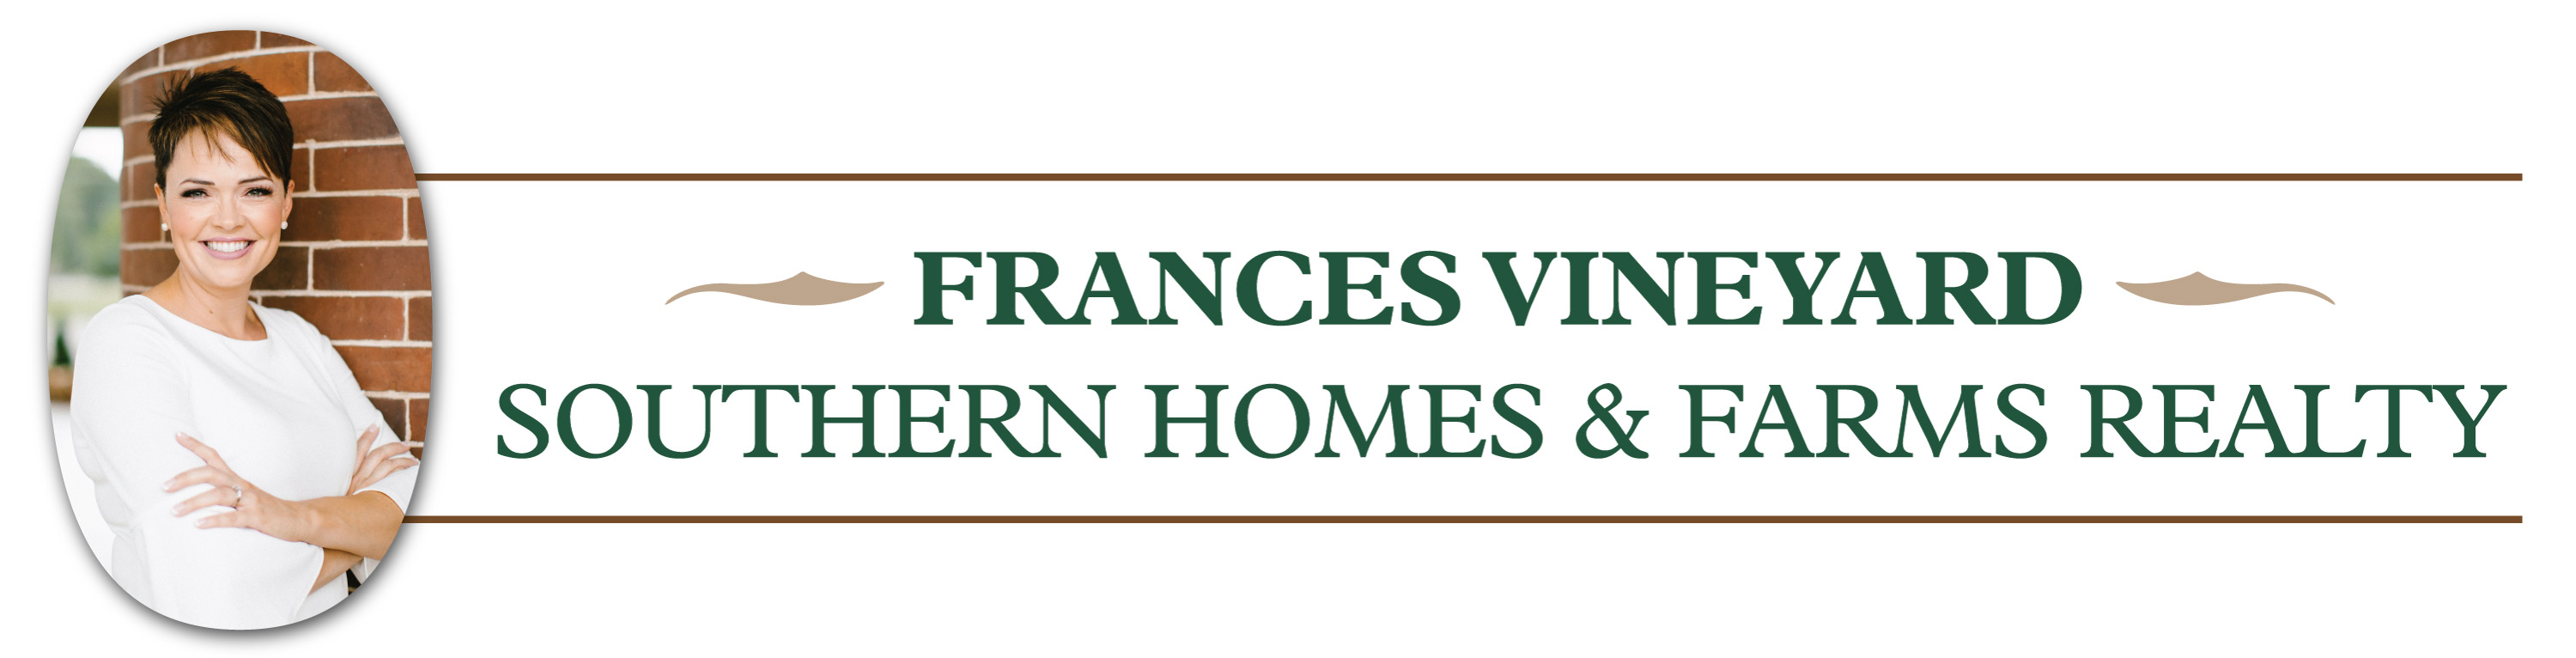 Frances Vineyard – Southern Homes & Farms Realty